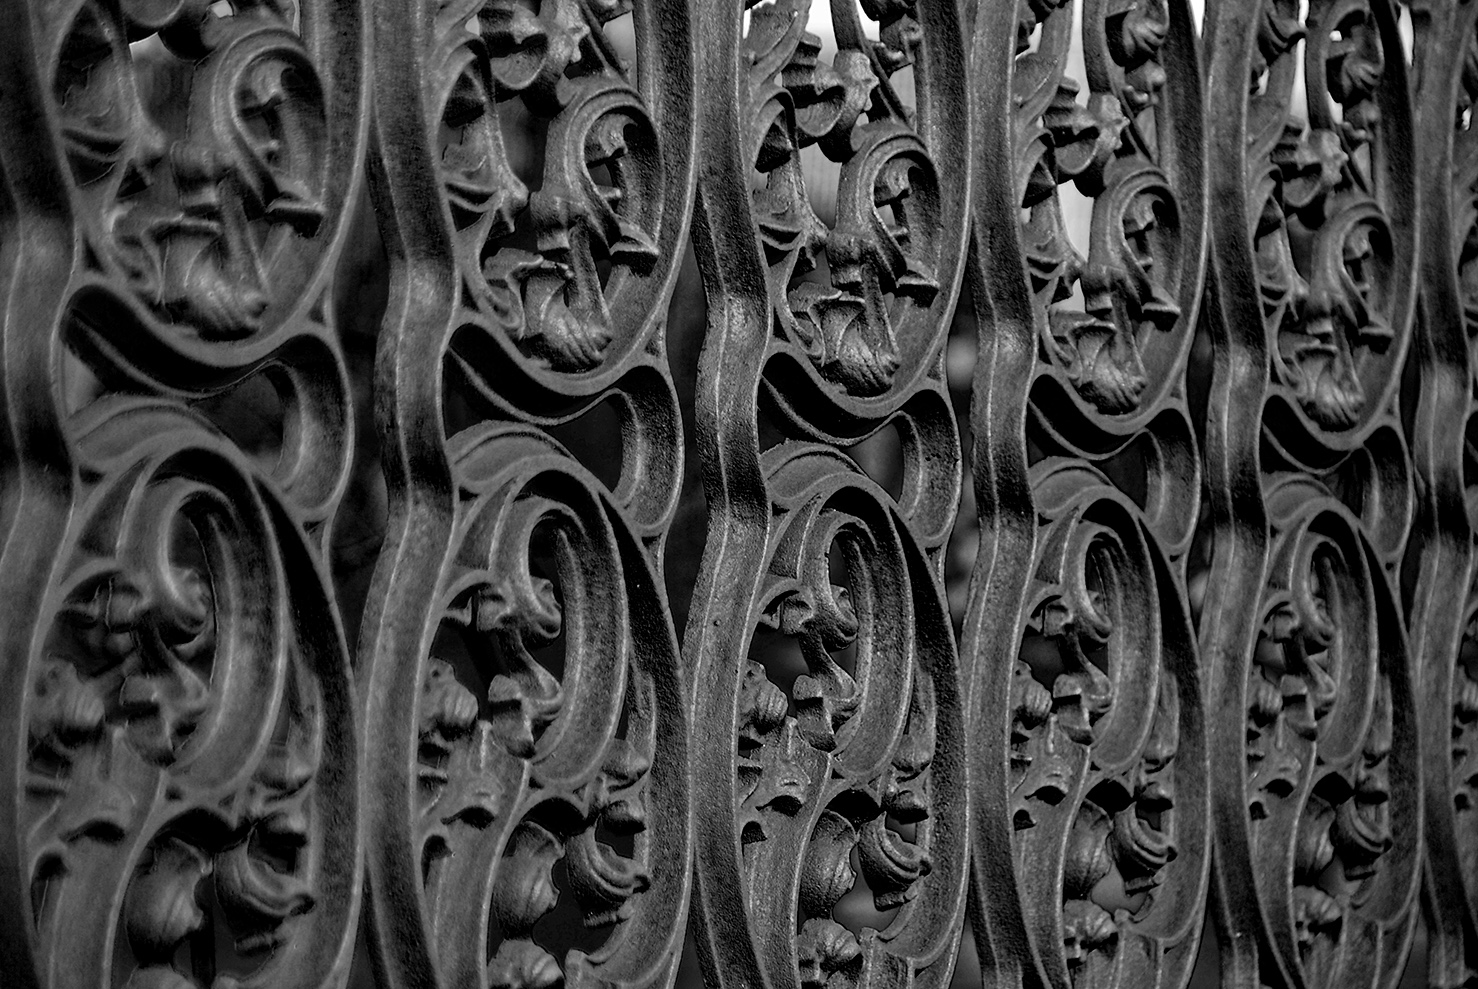 Wrought iron detail of grave enclosure.